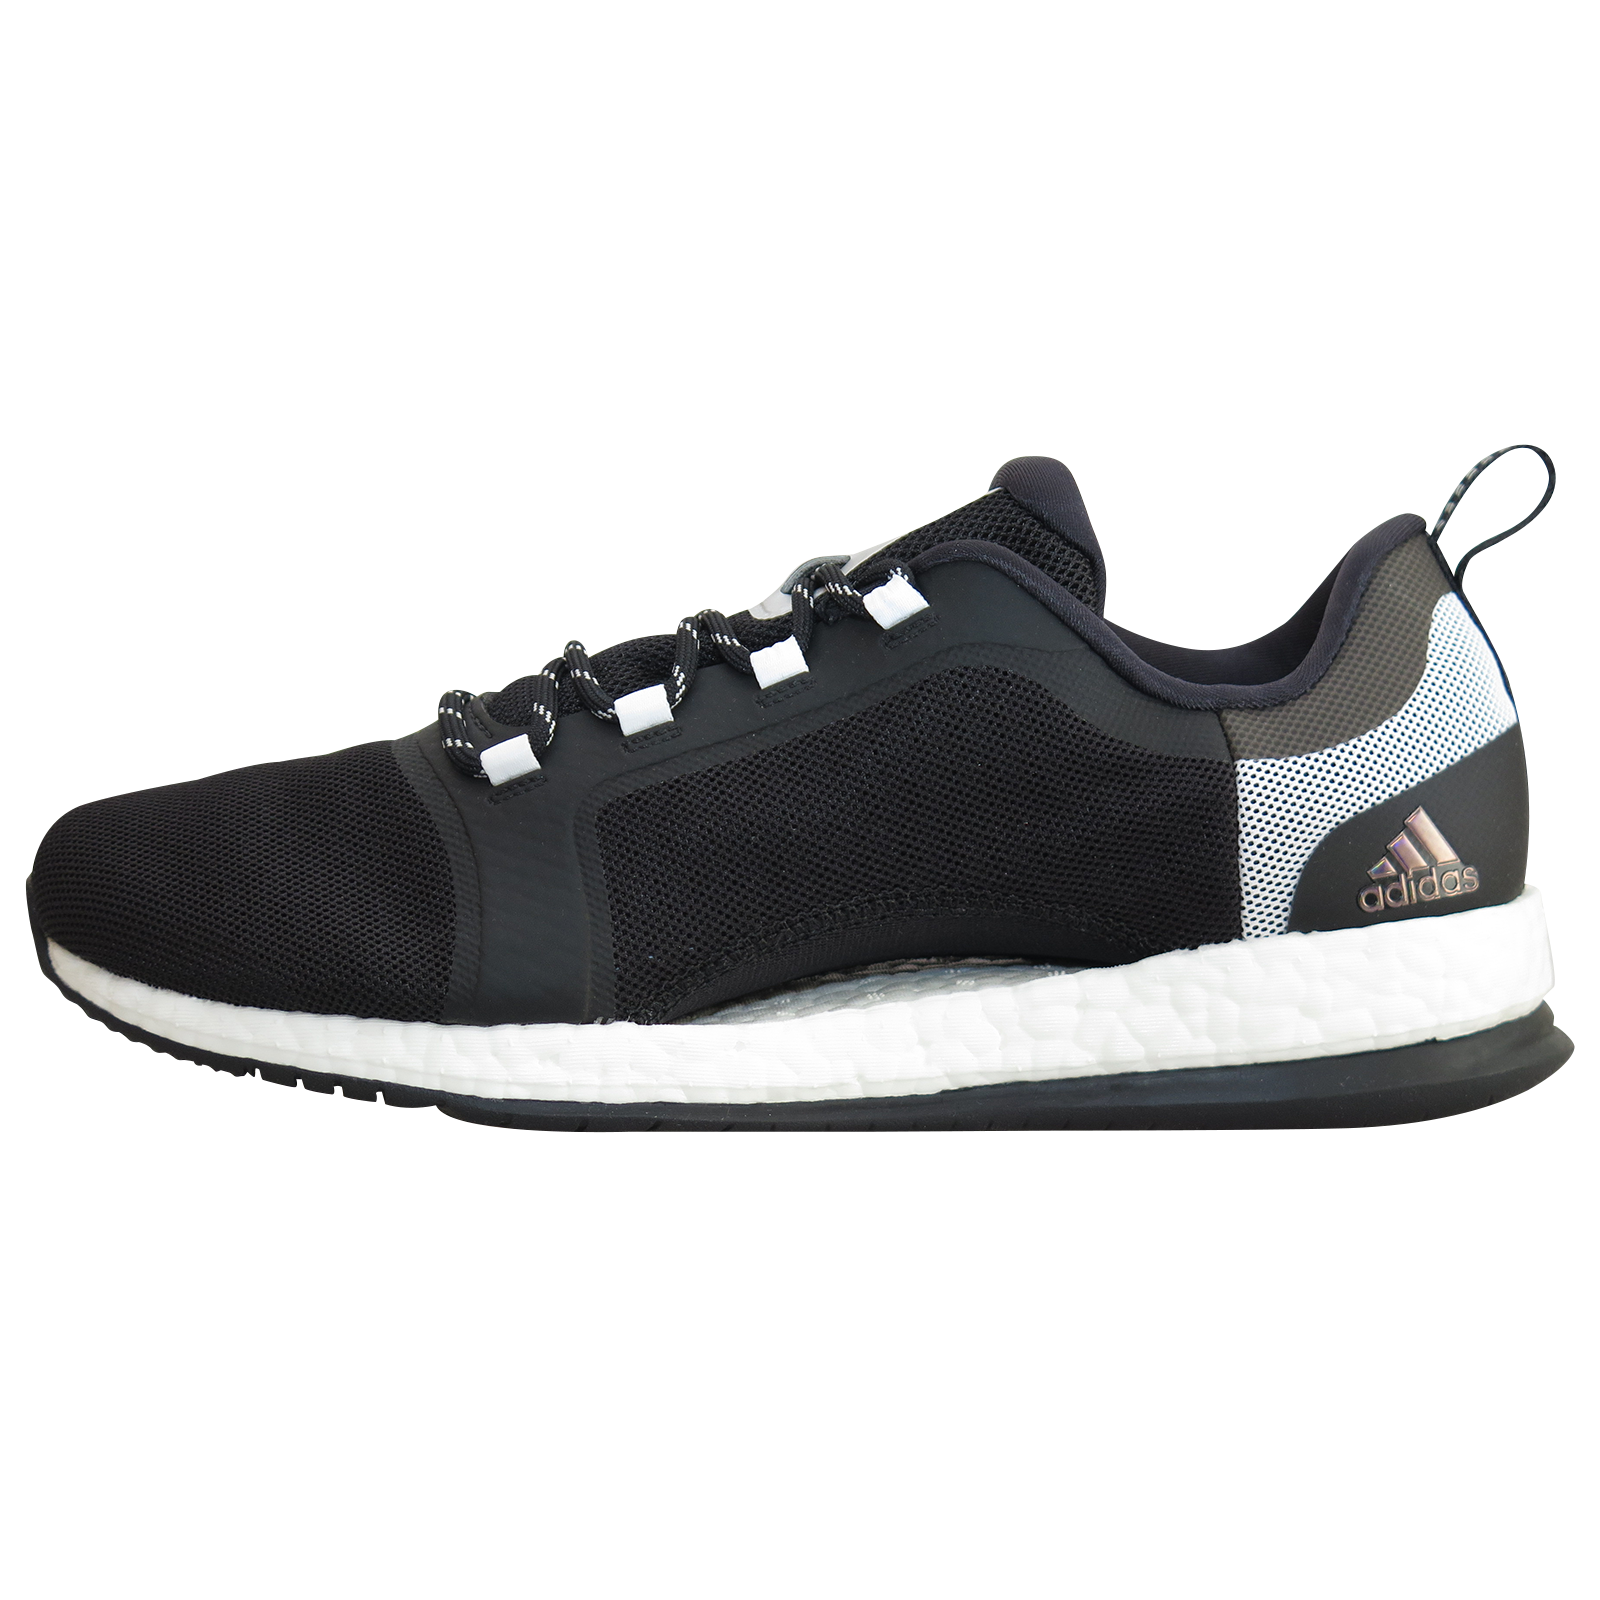 Adidas pure Boost x Trainer 2.0 Donna Trainingsschuh BB0699